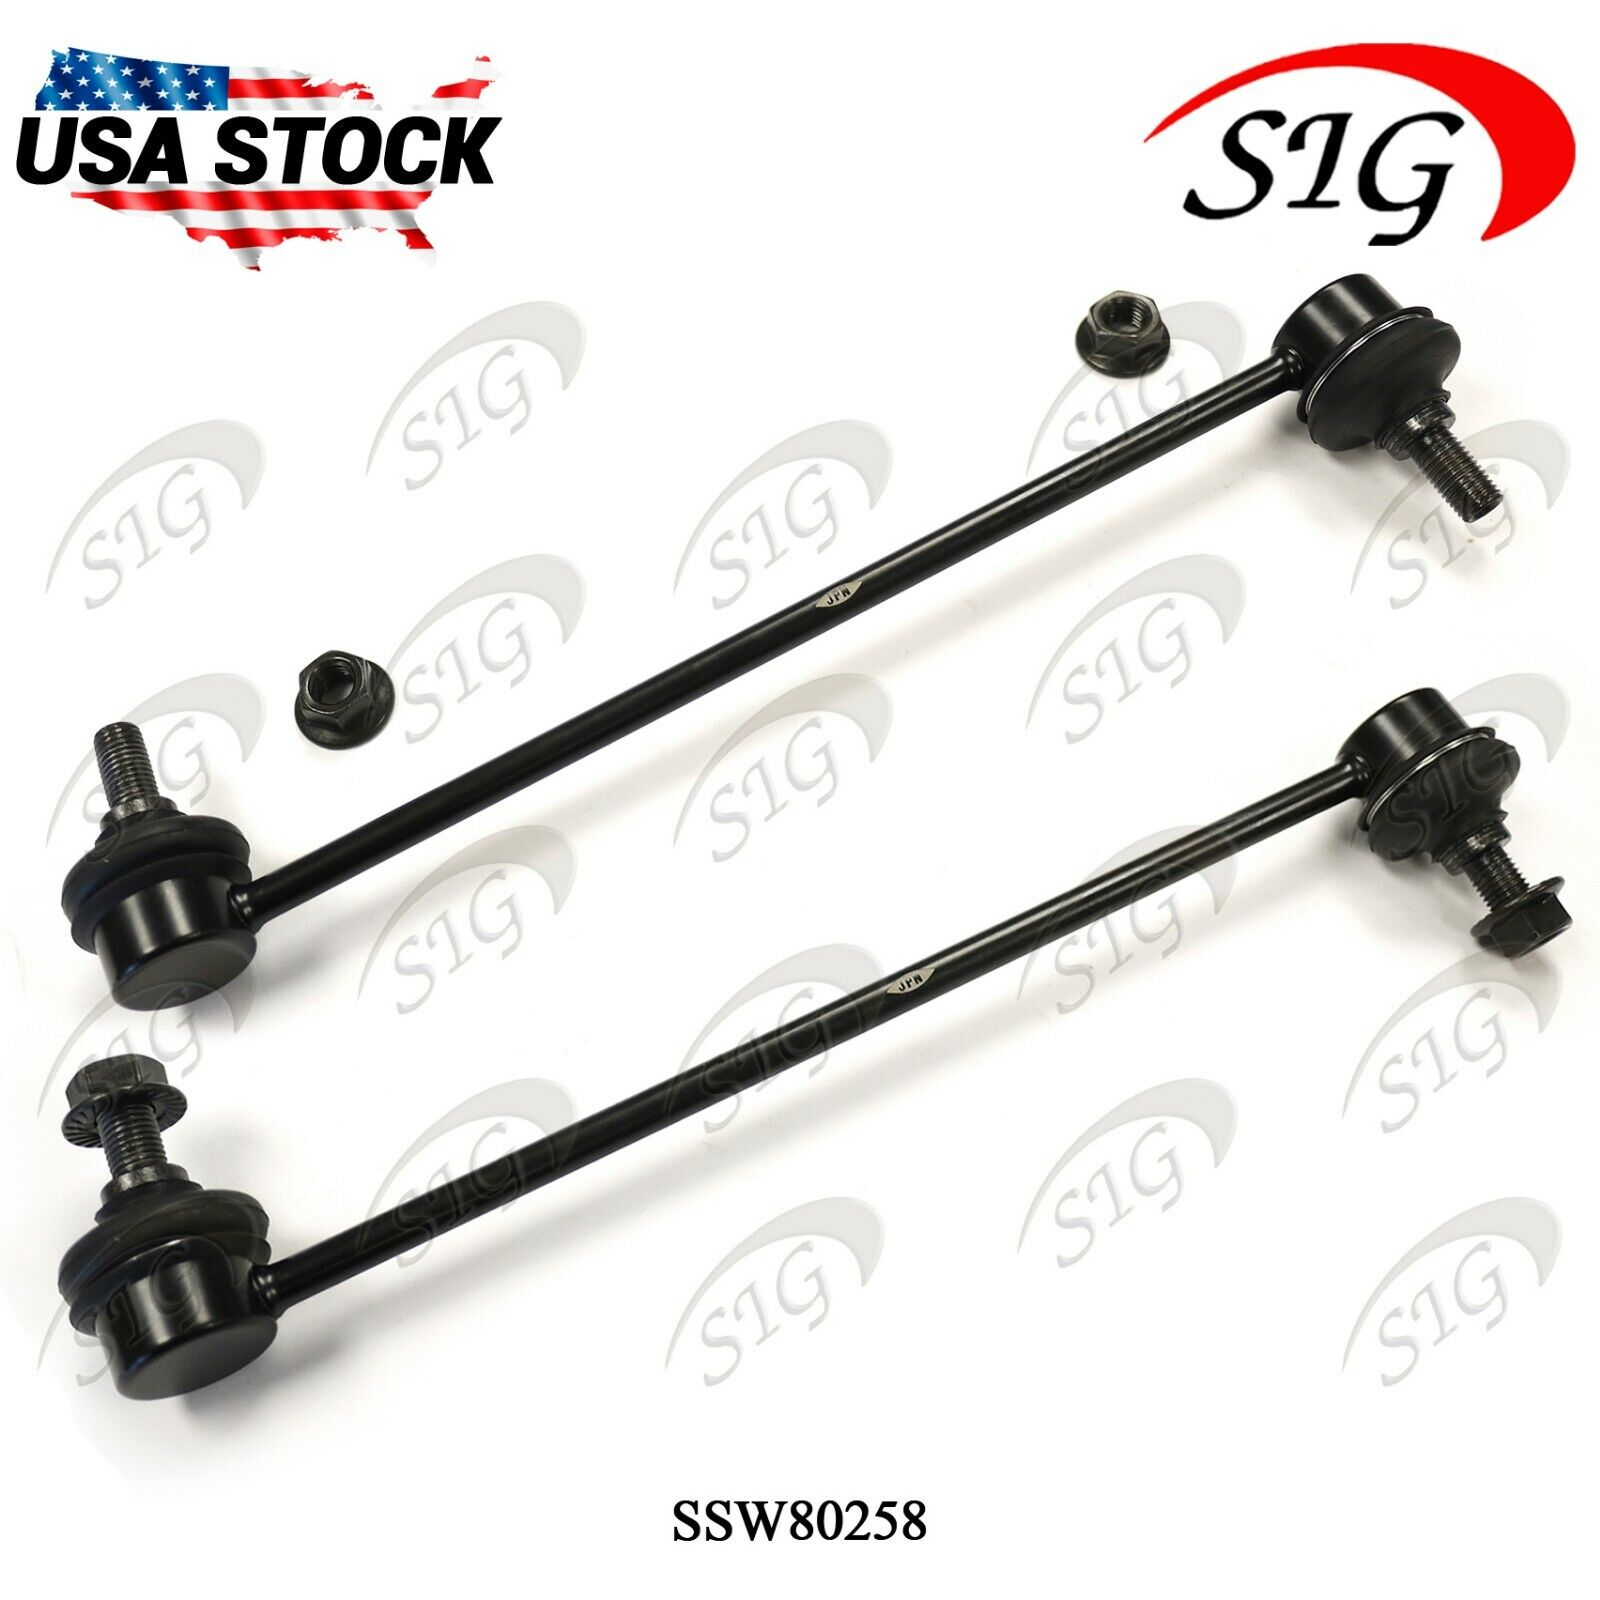 2011 fits Ford Edge Front Suspension Stabilizer Bar Link With Five Years Warranty Package include One Sway Bar Link Only